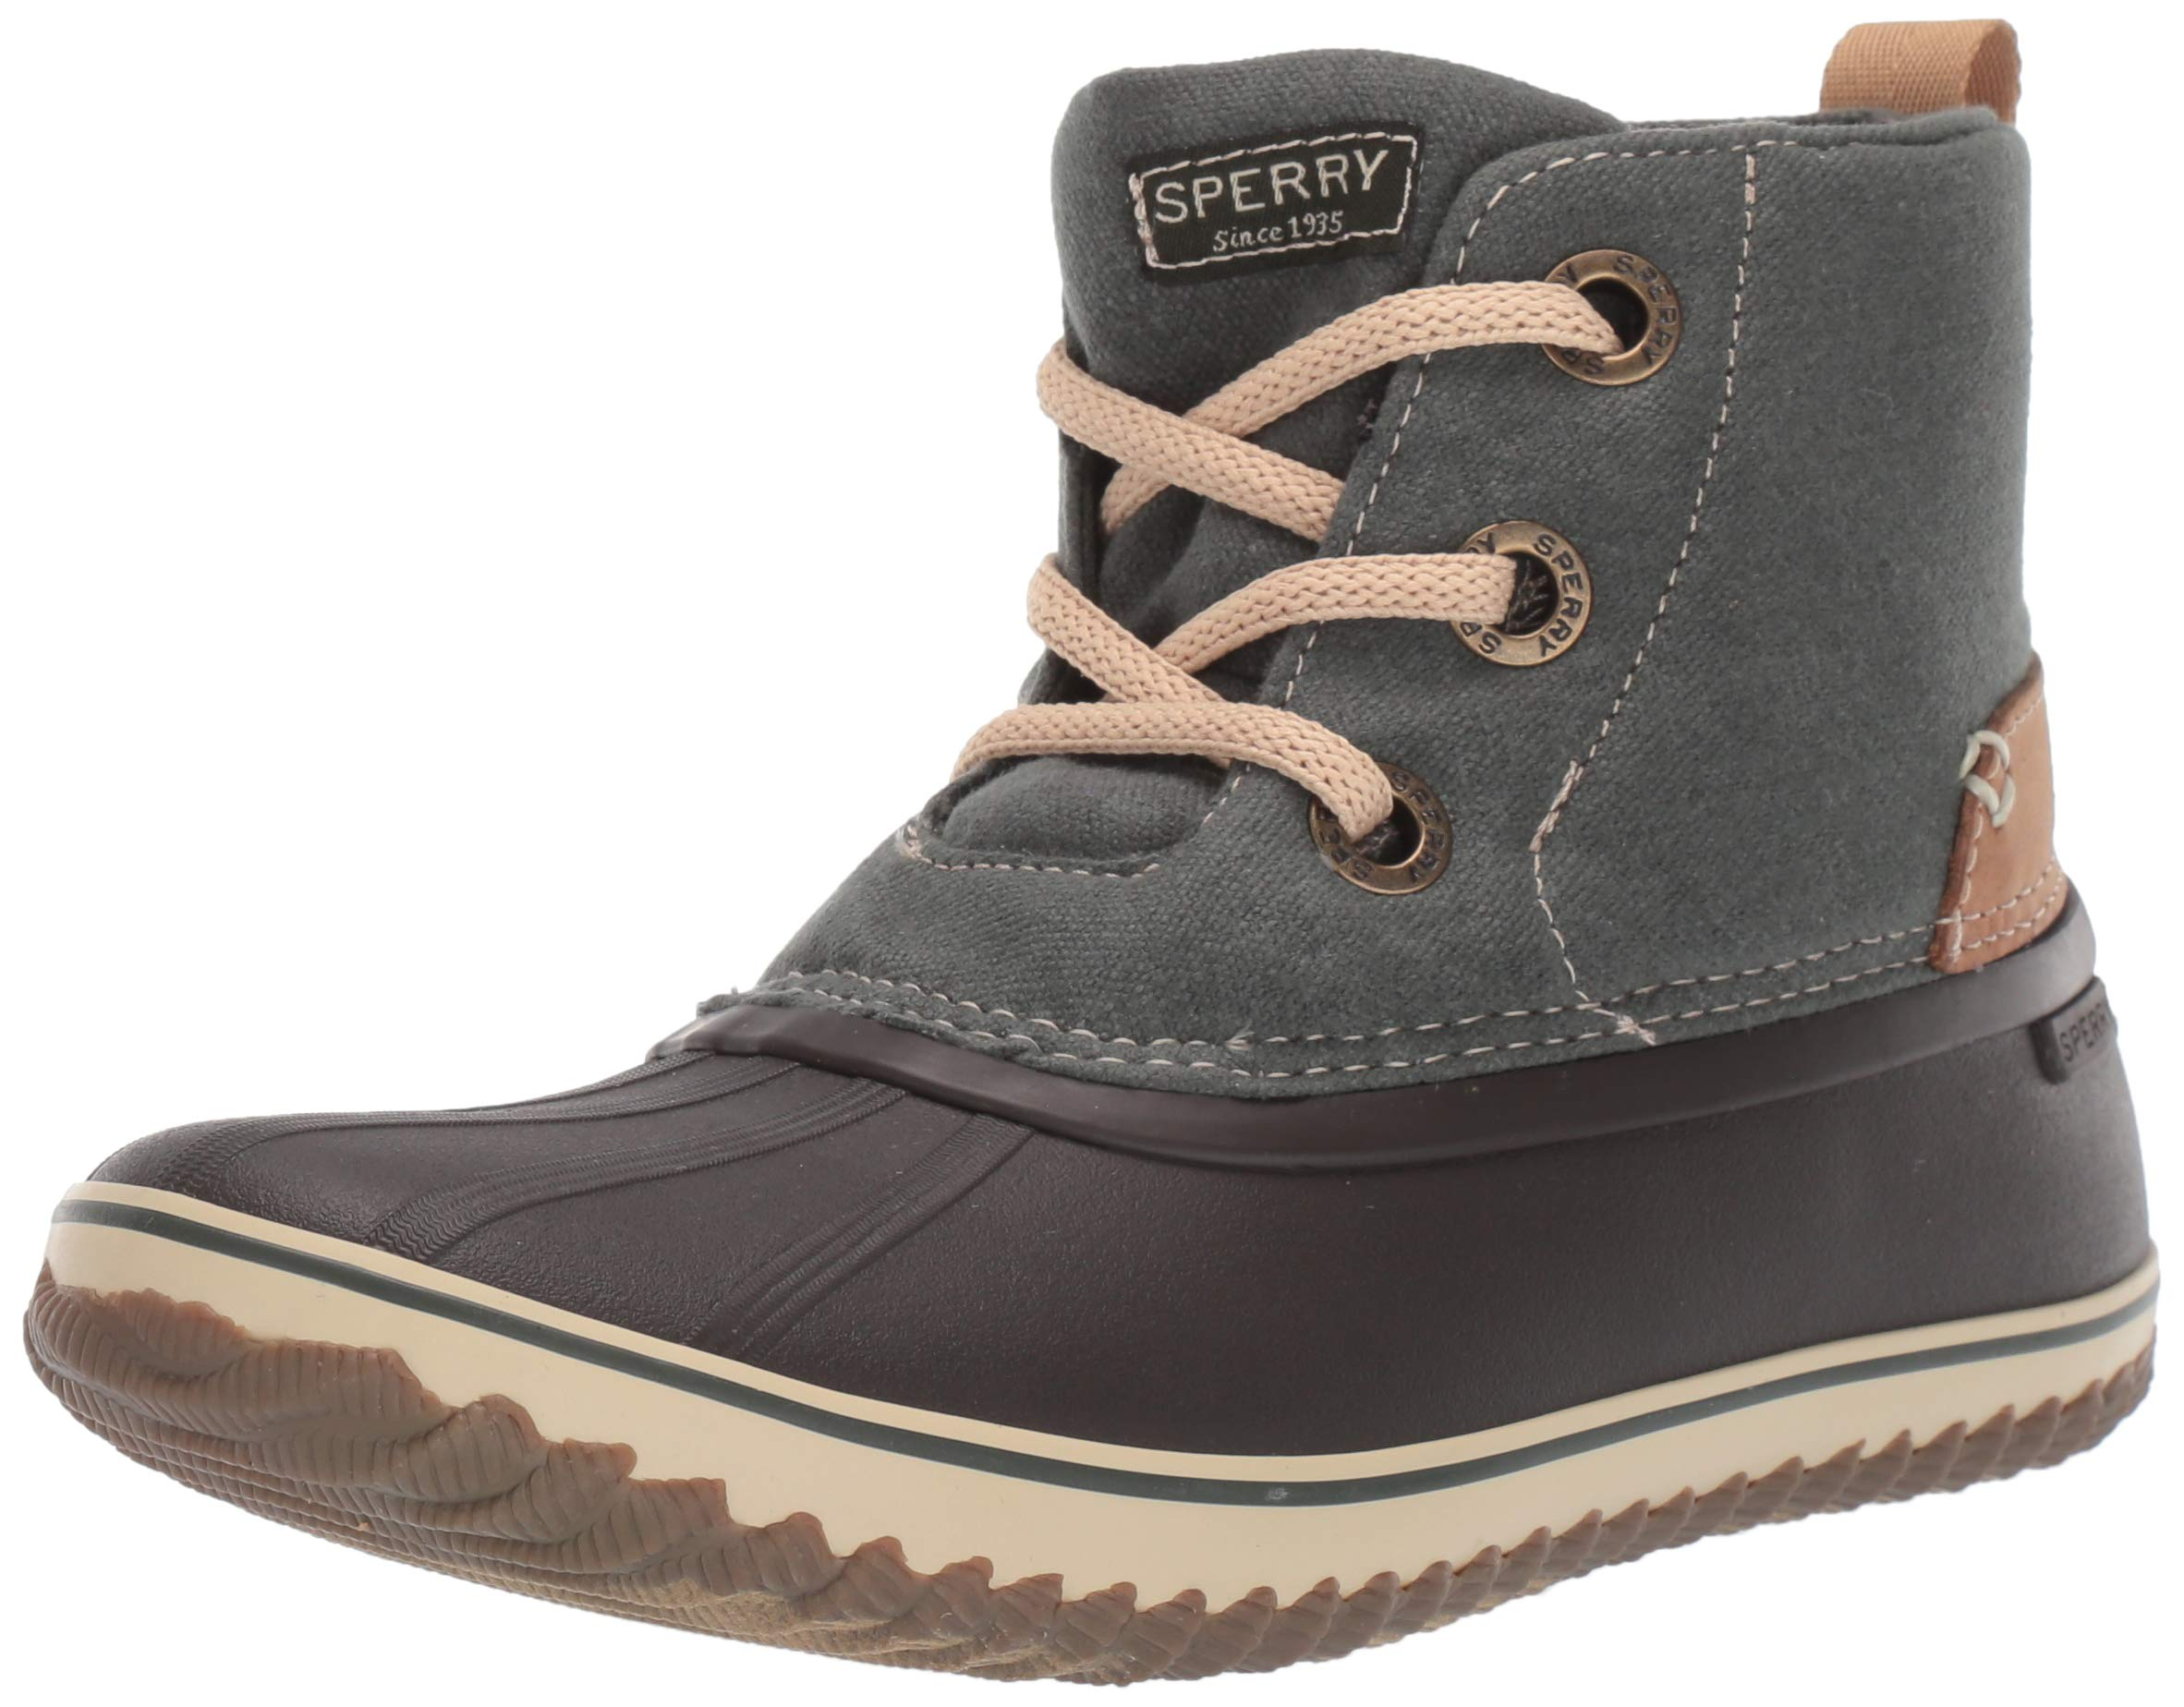 SPERRY Women's Schooner 3-Eye LACE UP Canvas Snow Boot, Olive, 12 by SPERRY